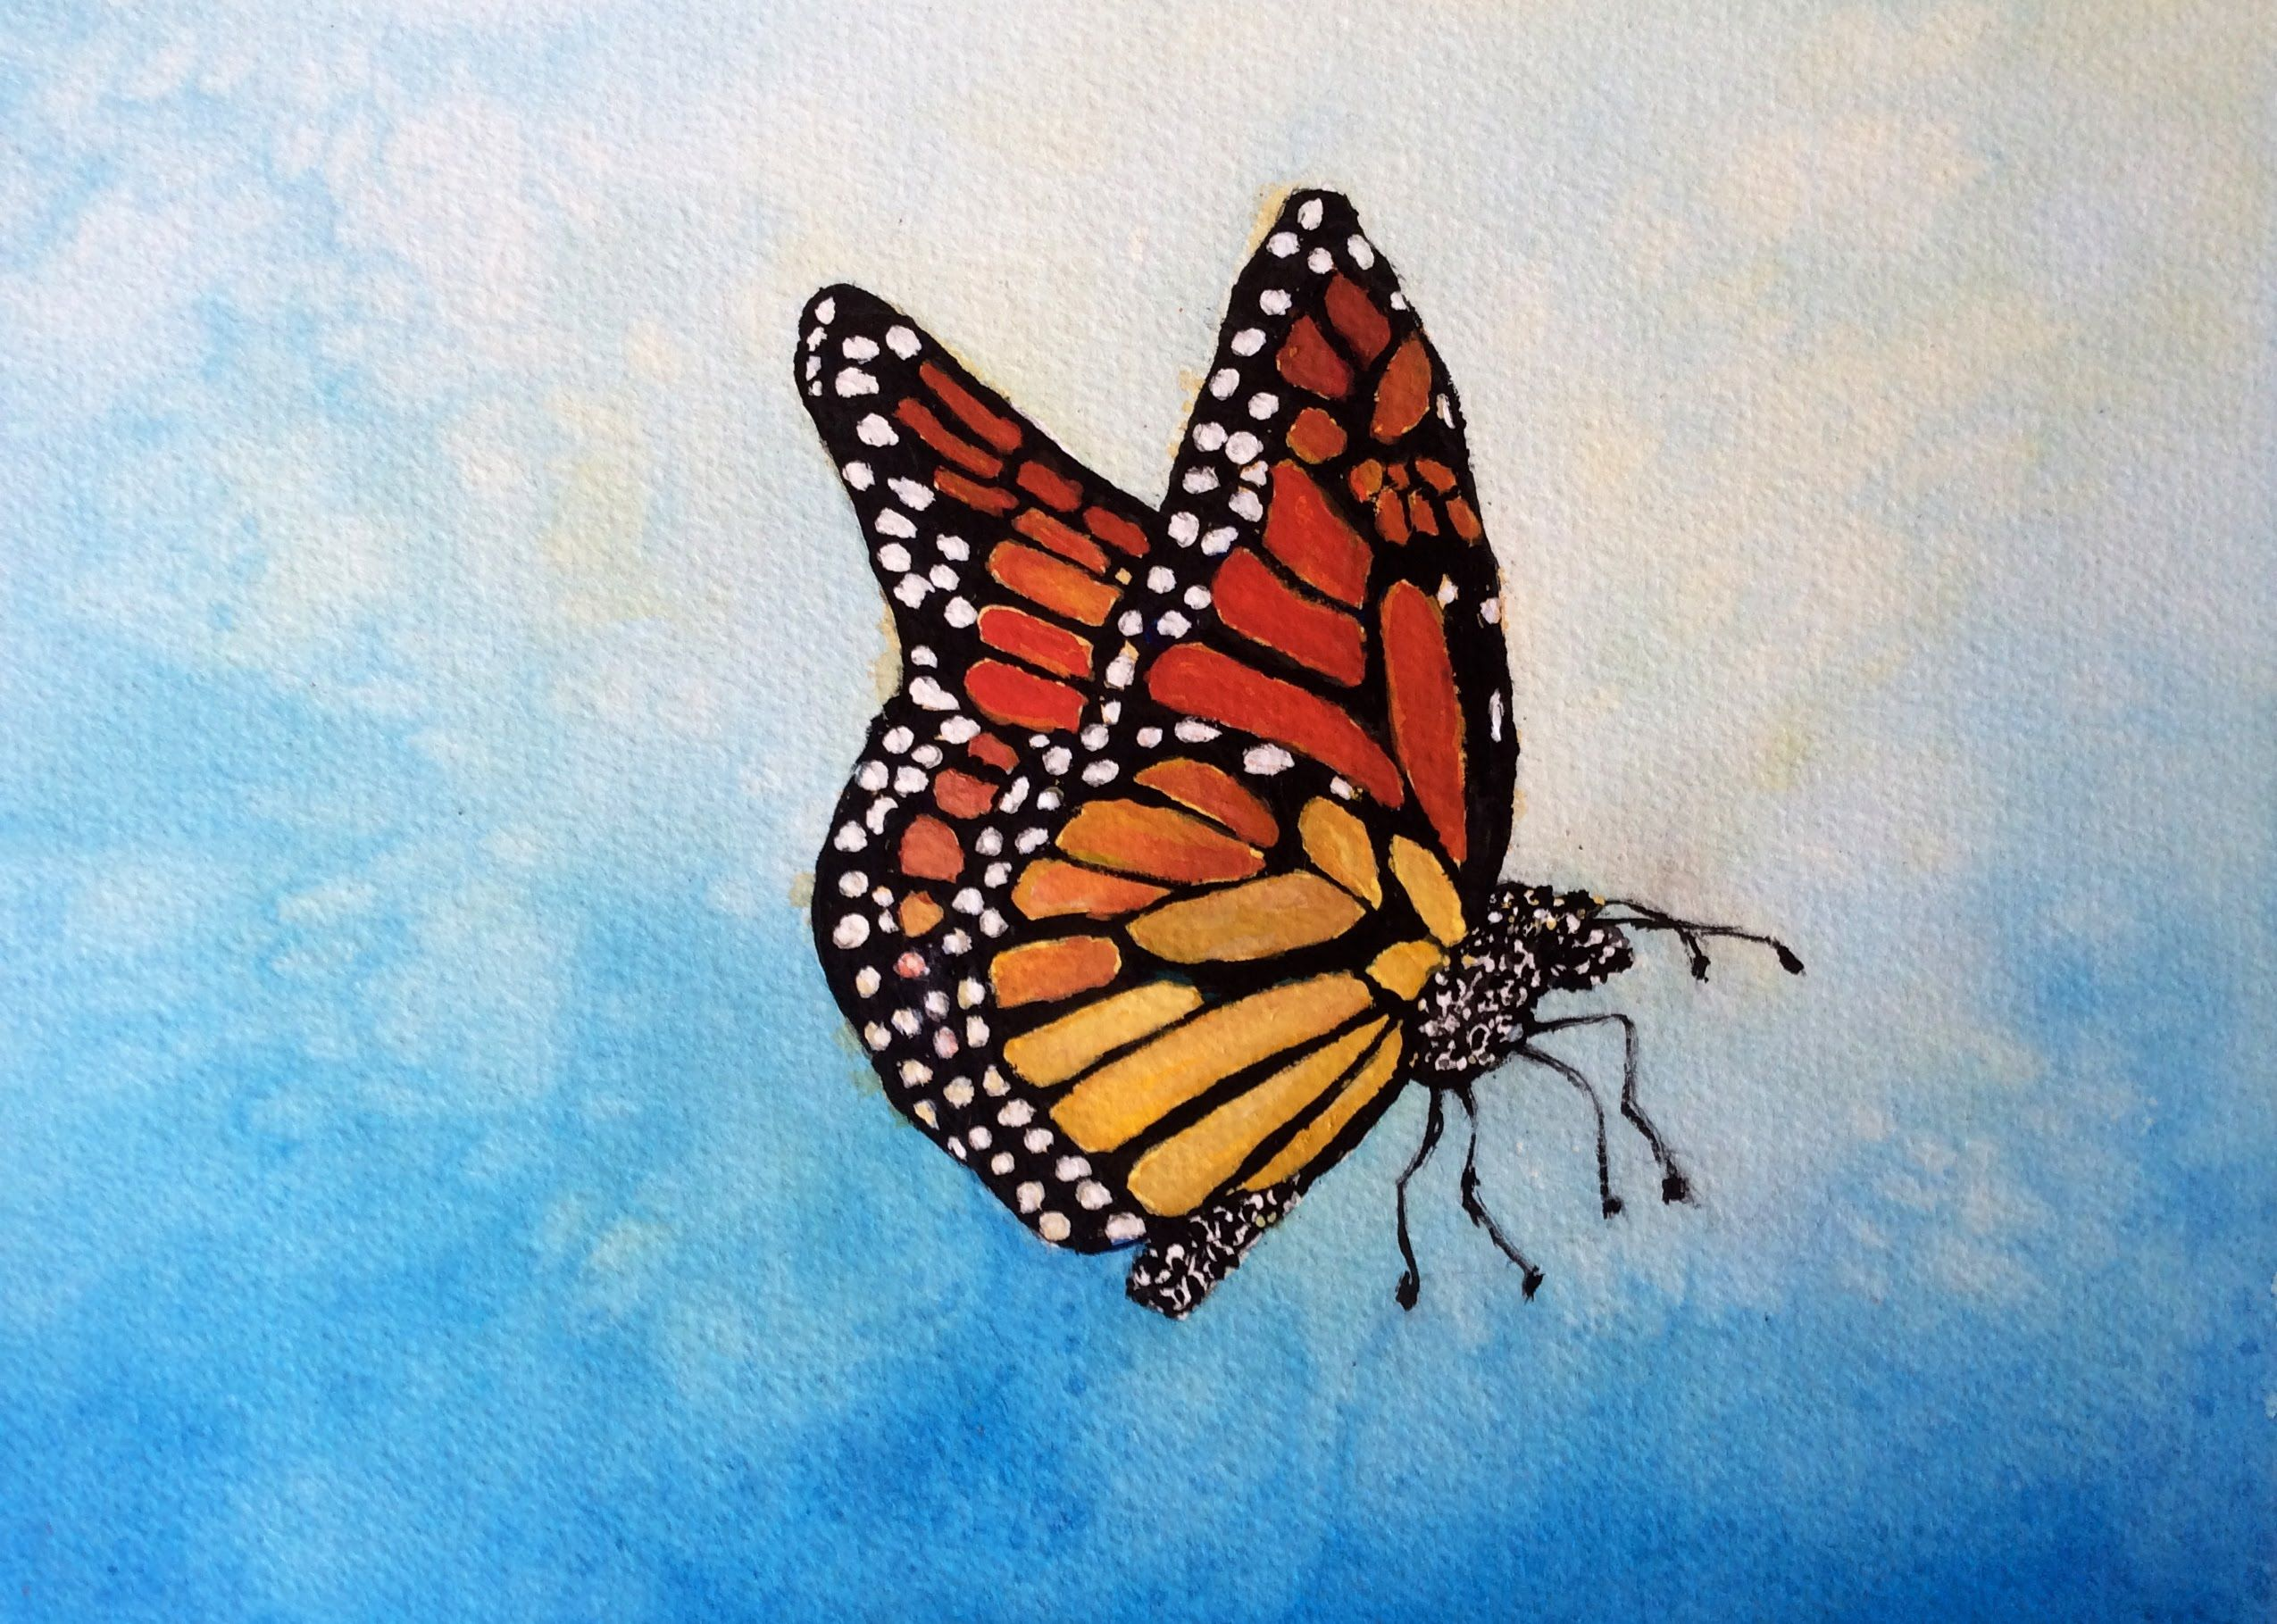 How To Paint A Monarch Butterfly With Watercolor Step By Step